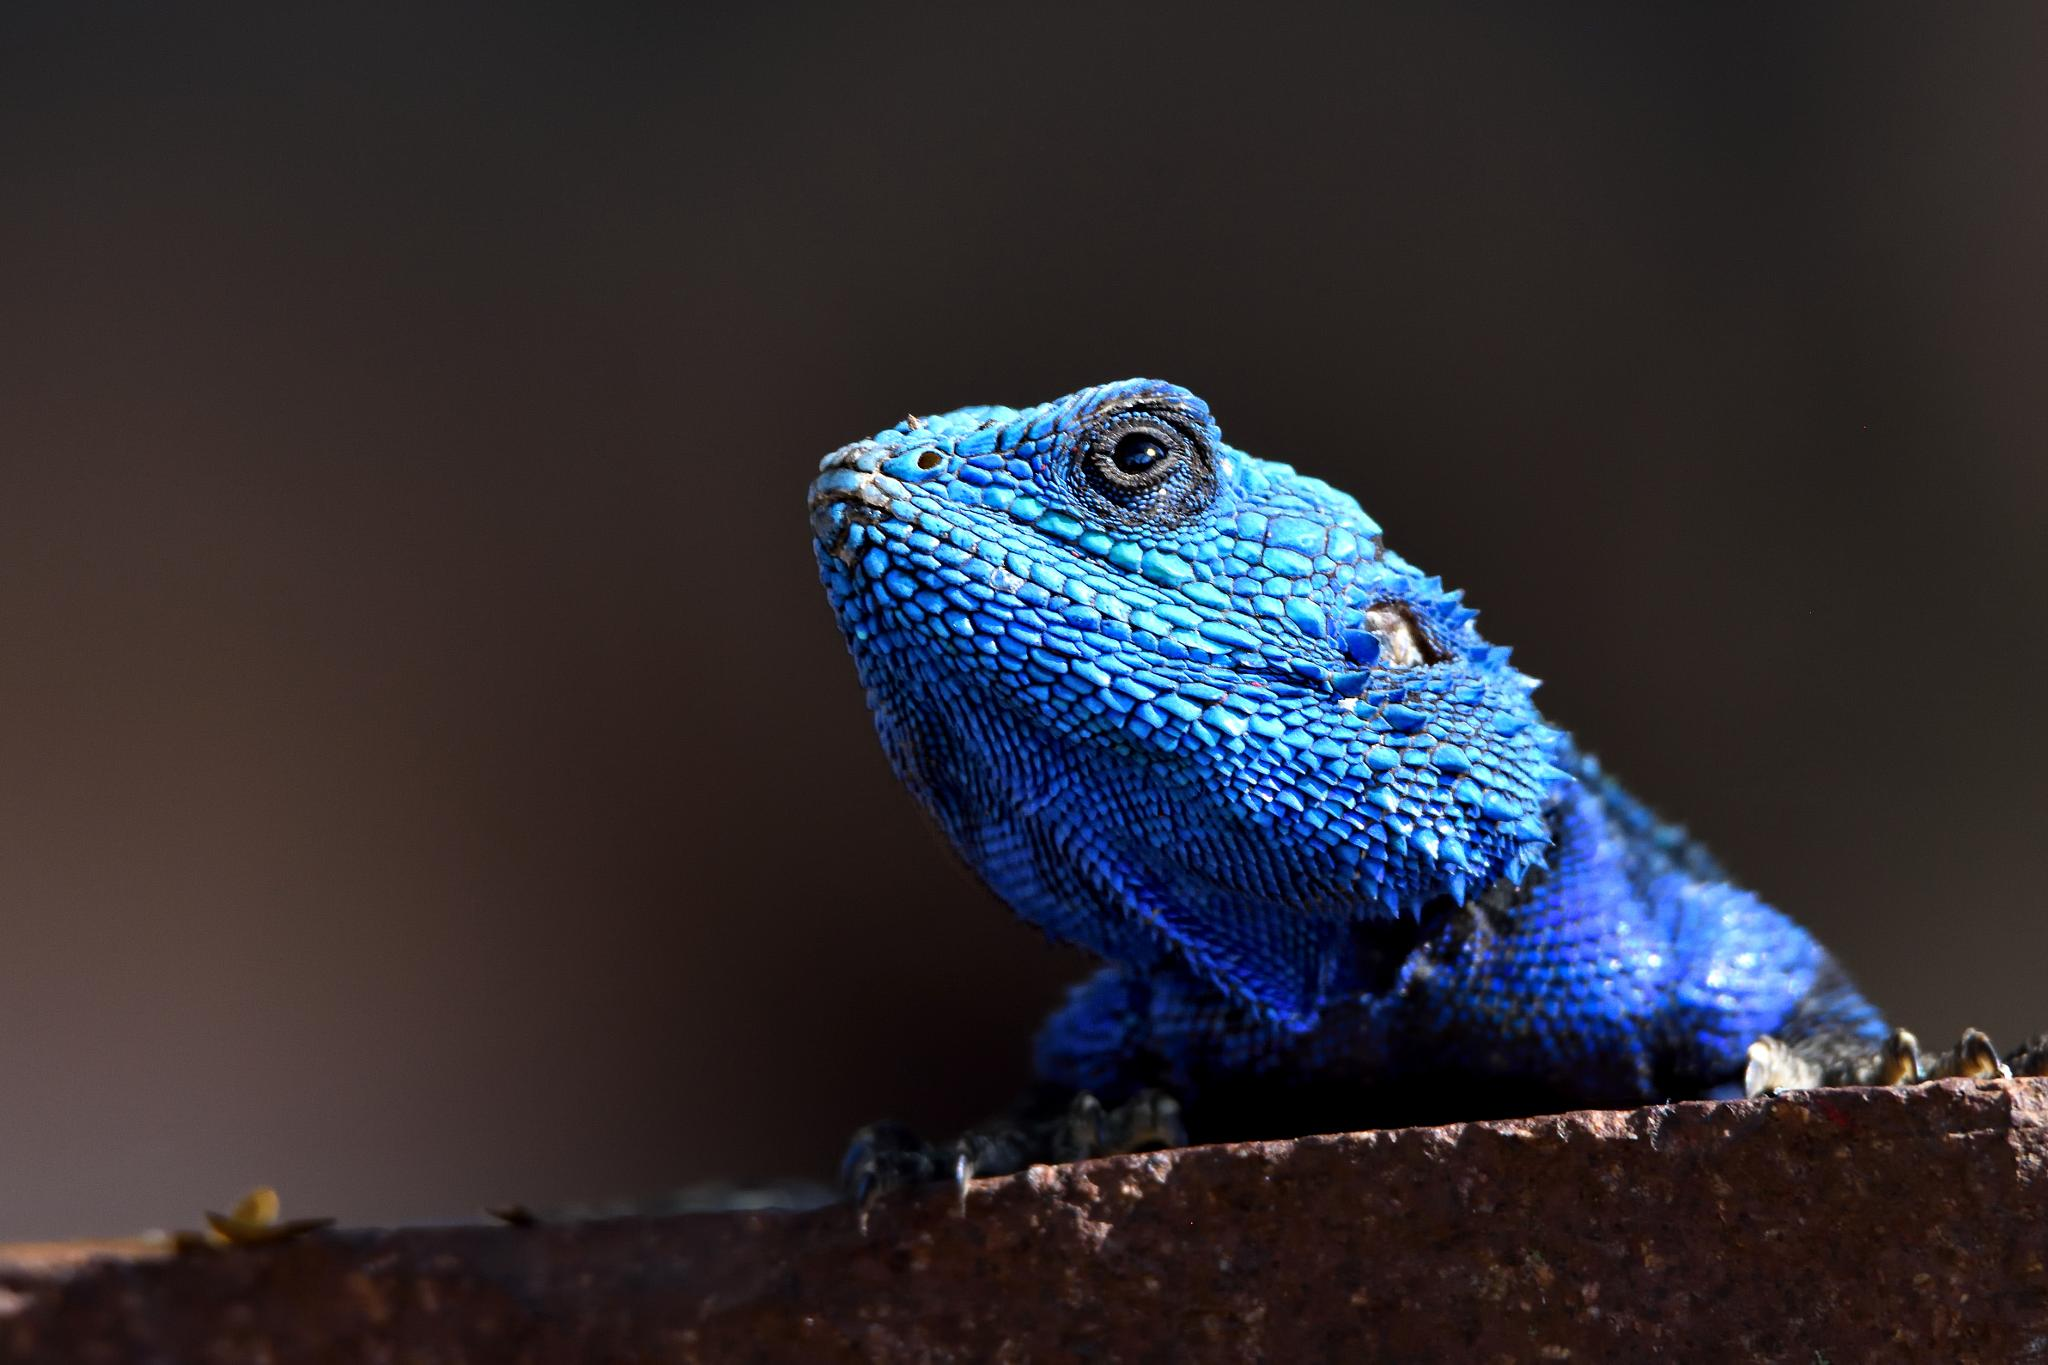 Blue Head Agama lizard by miwwim